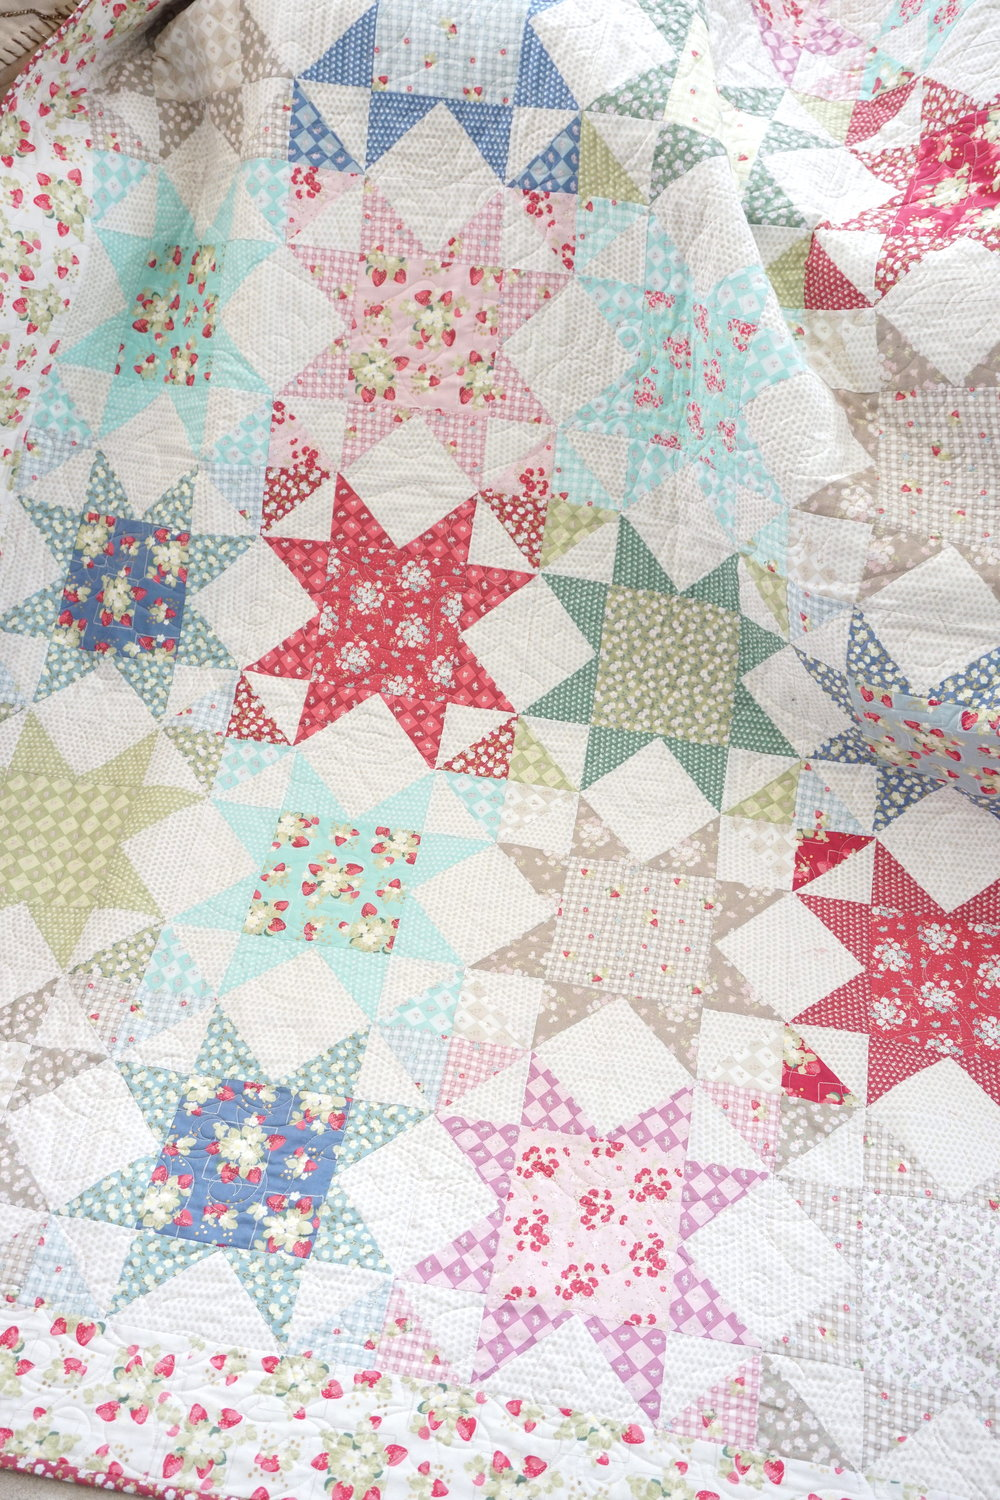 La Conner Stars Quilt by Jera Brandvig of Quilting In The Rain - Photo by Jera Brandvig